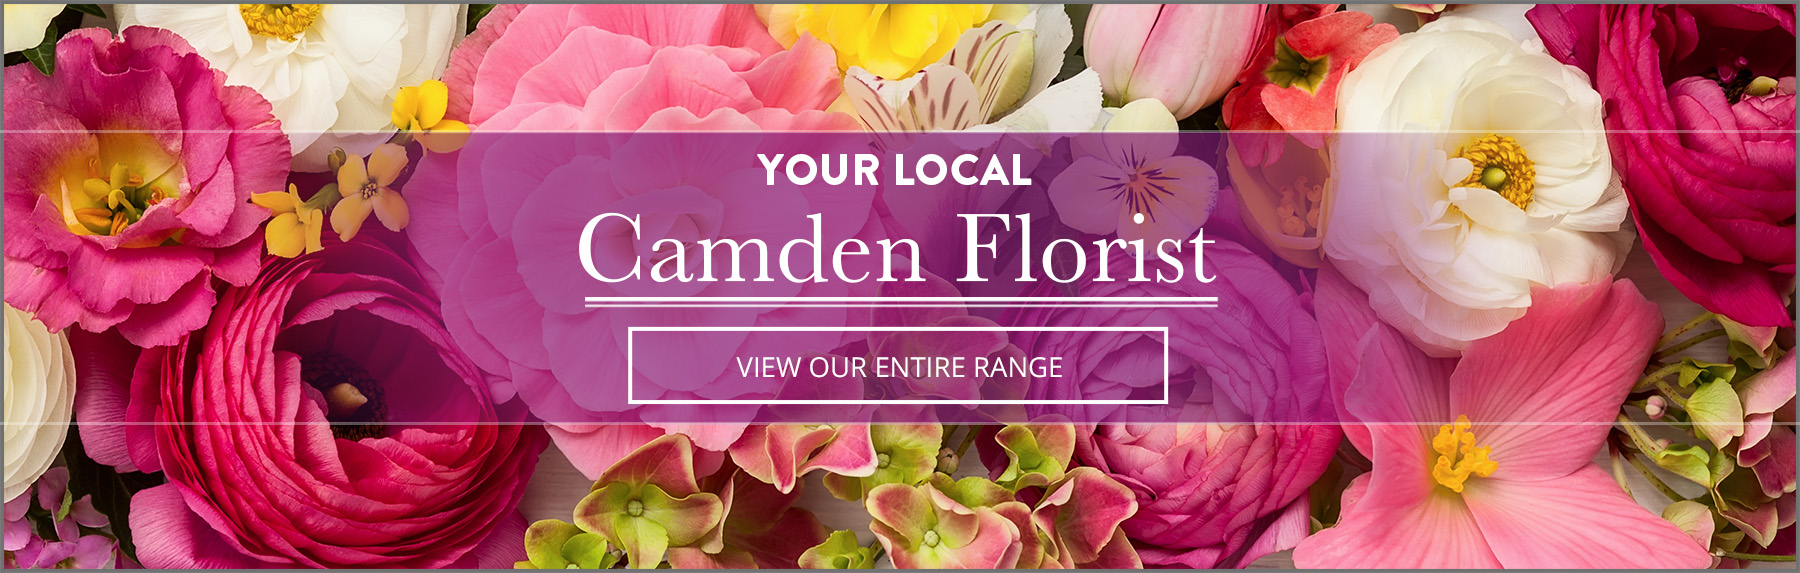 Your local camden florist - View our entire range